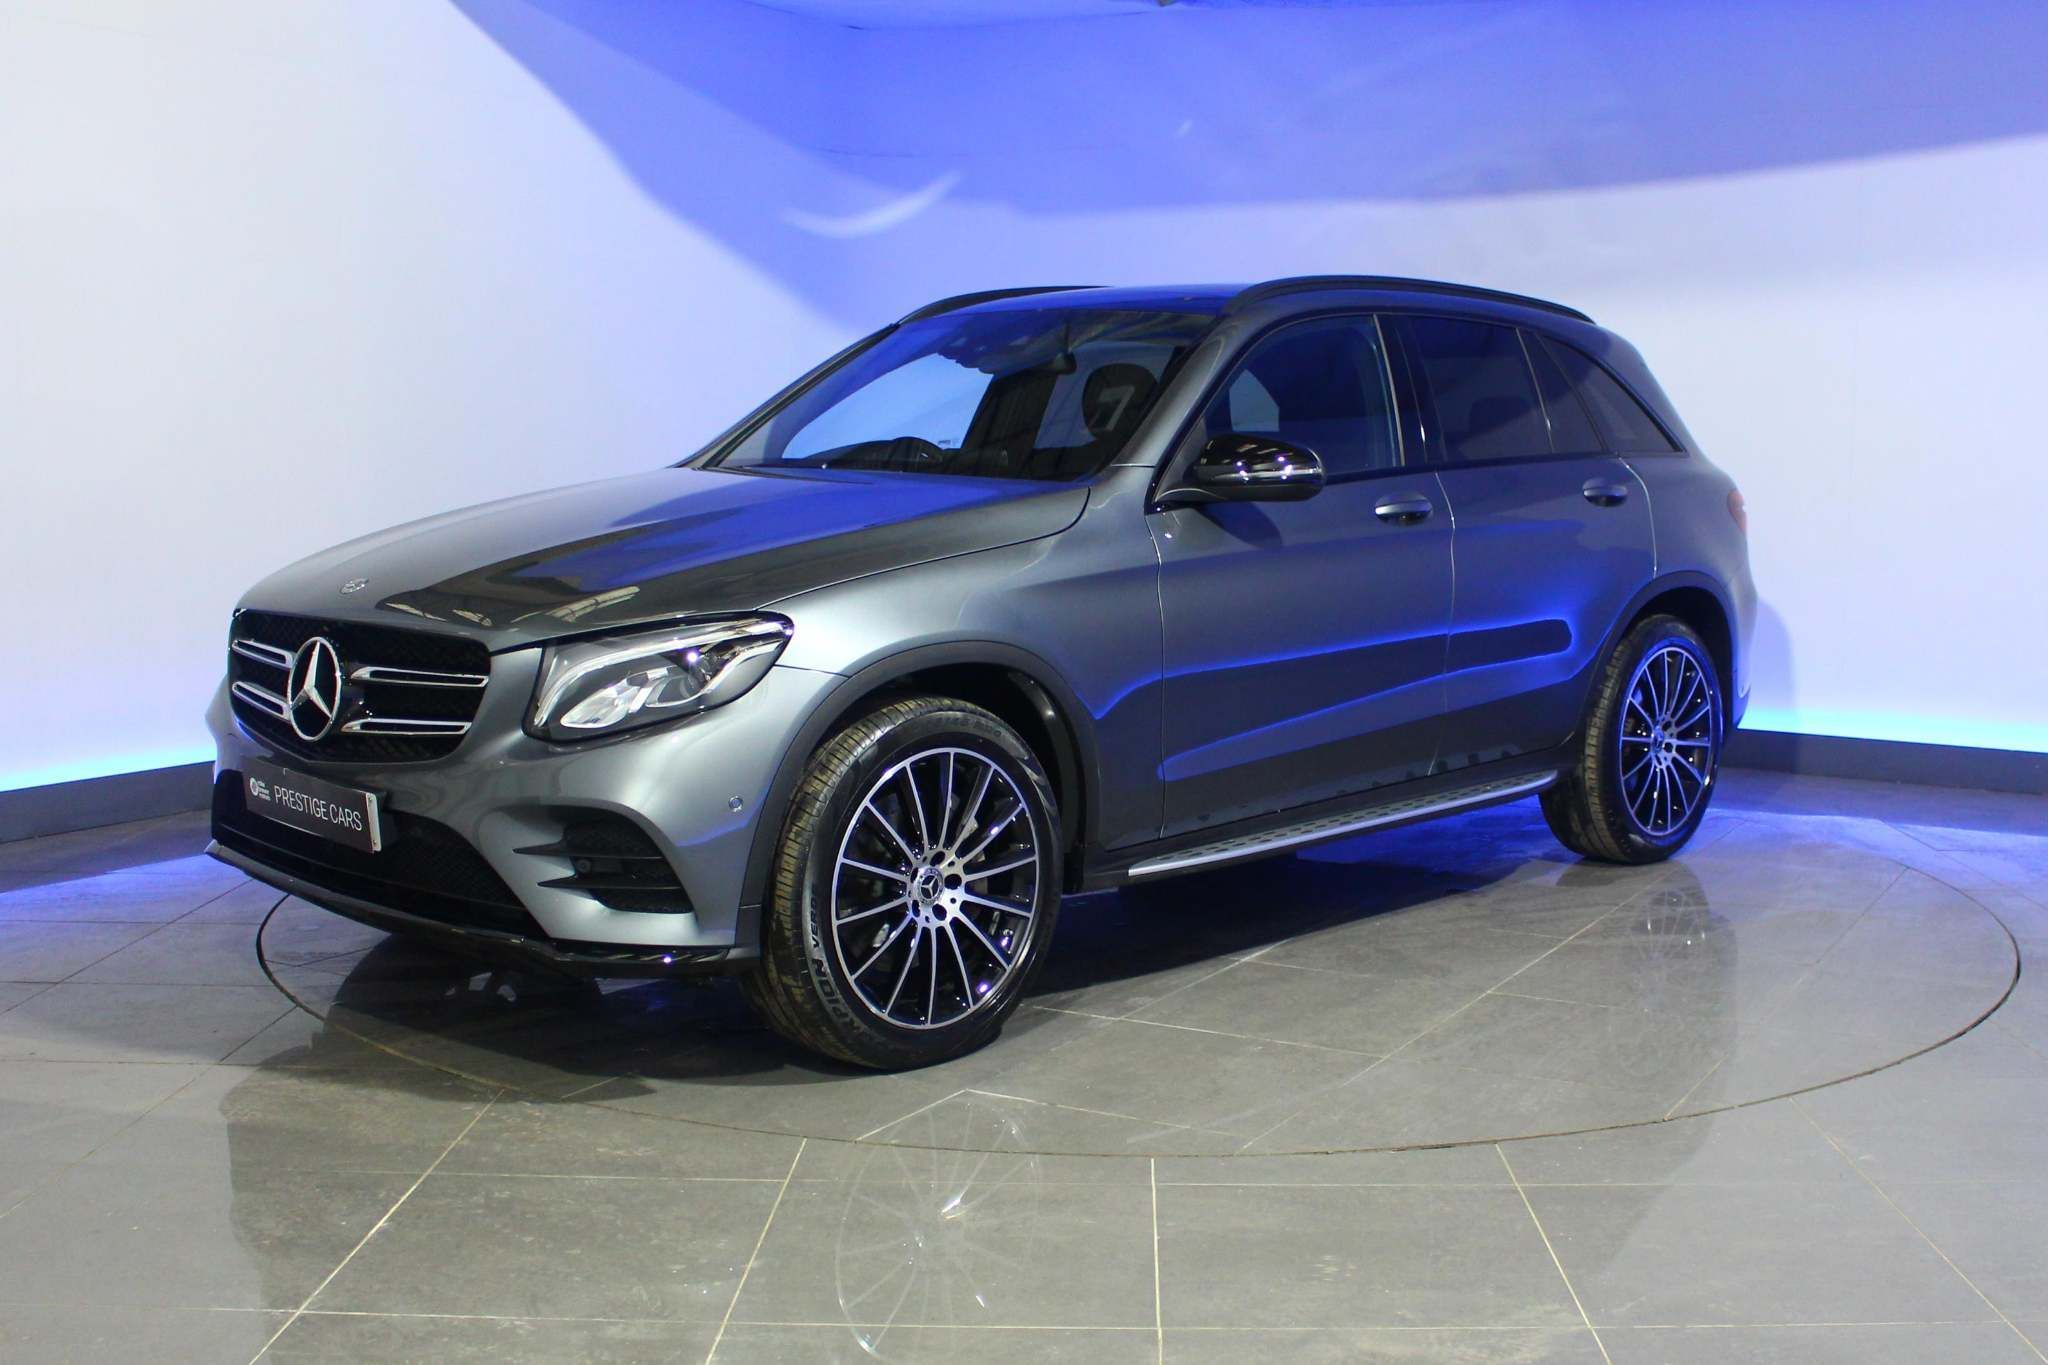 Used  Mercedes-Benz GLC Class AMG Night Edition